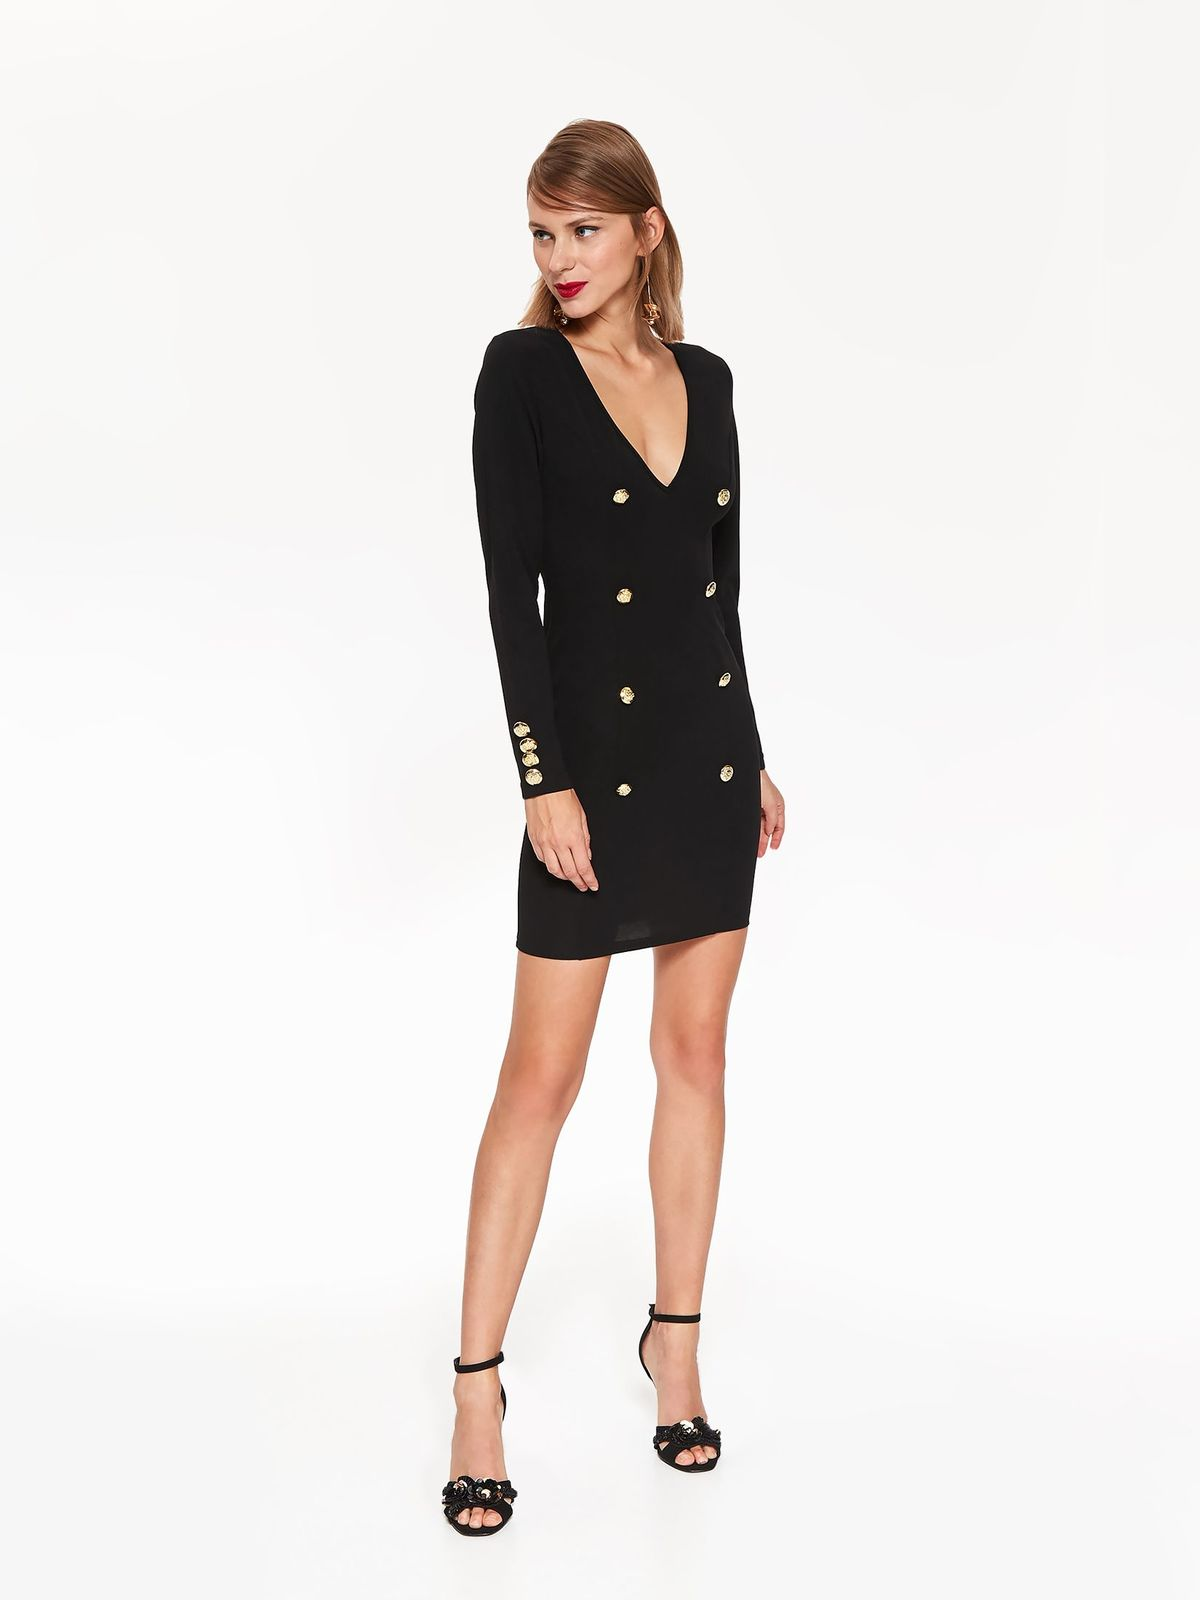 Top Secret black occasional pencil dress with a cleavage with button accessories